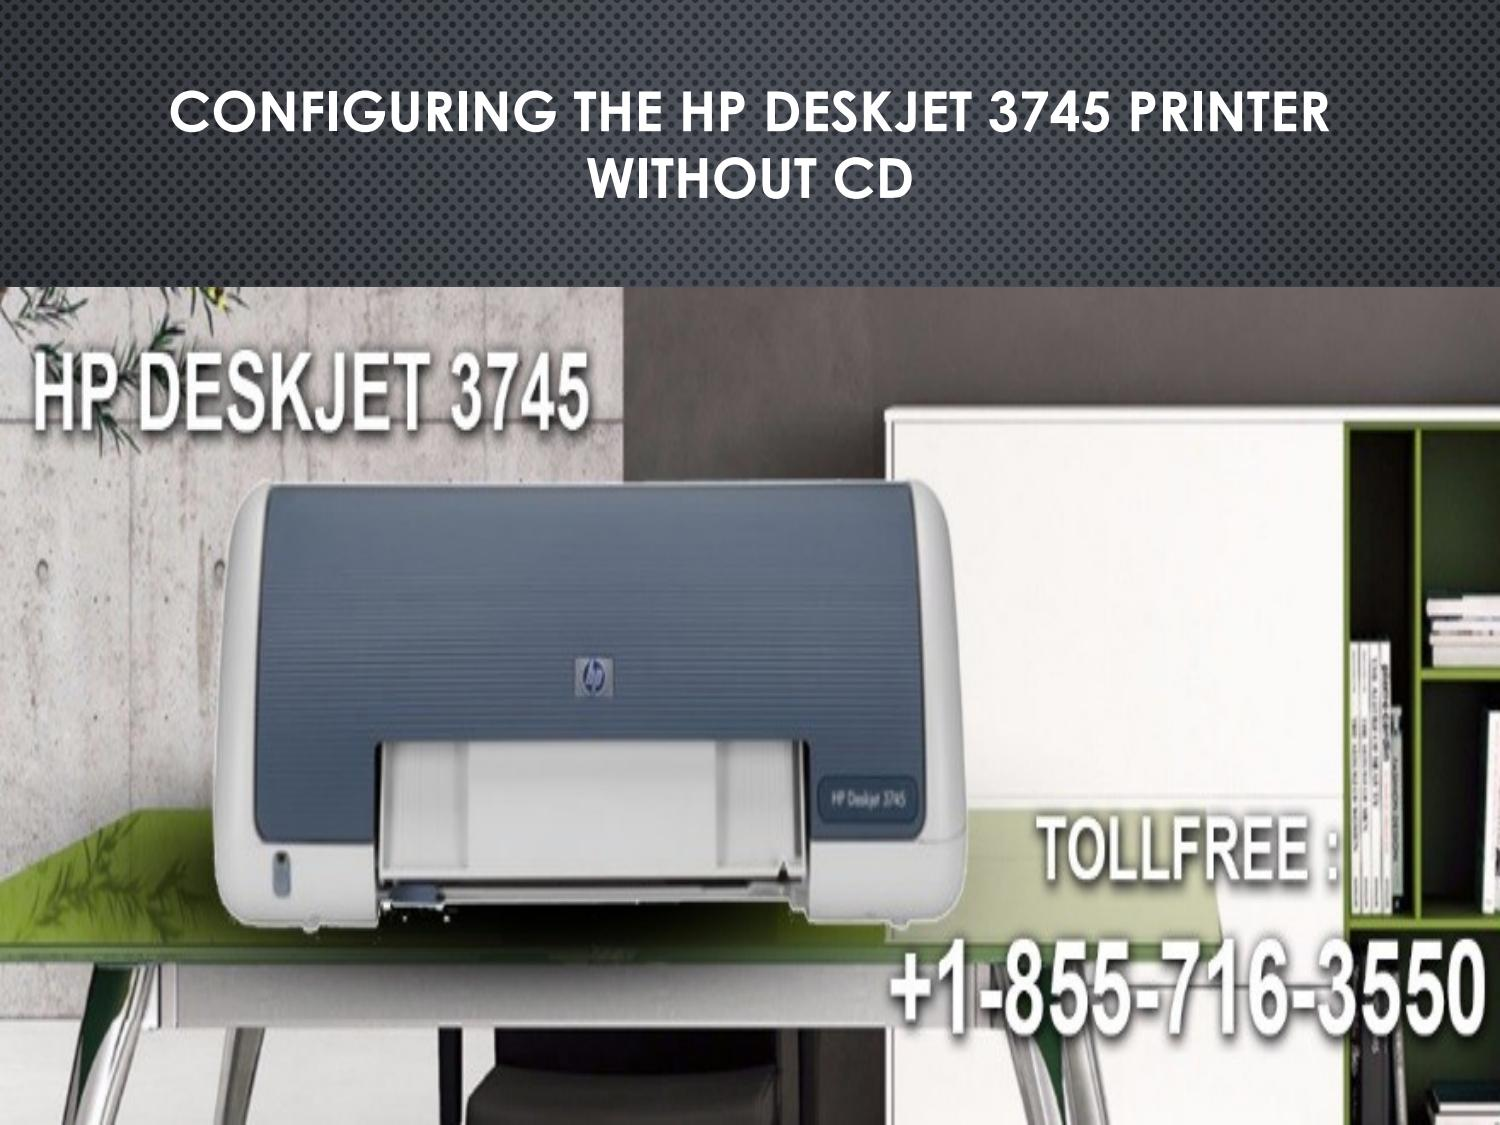 How to Install HP DeskJet 3745 printer without CD? by 123-HP